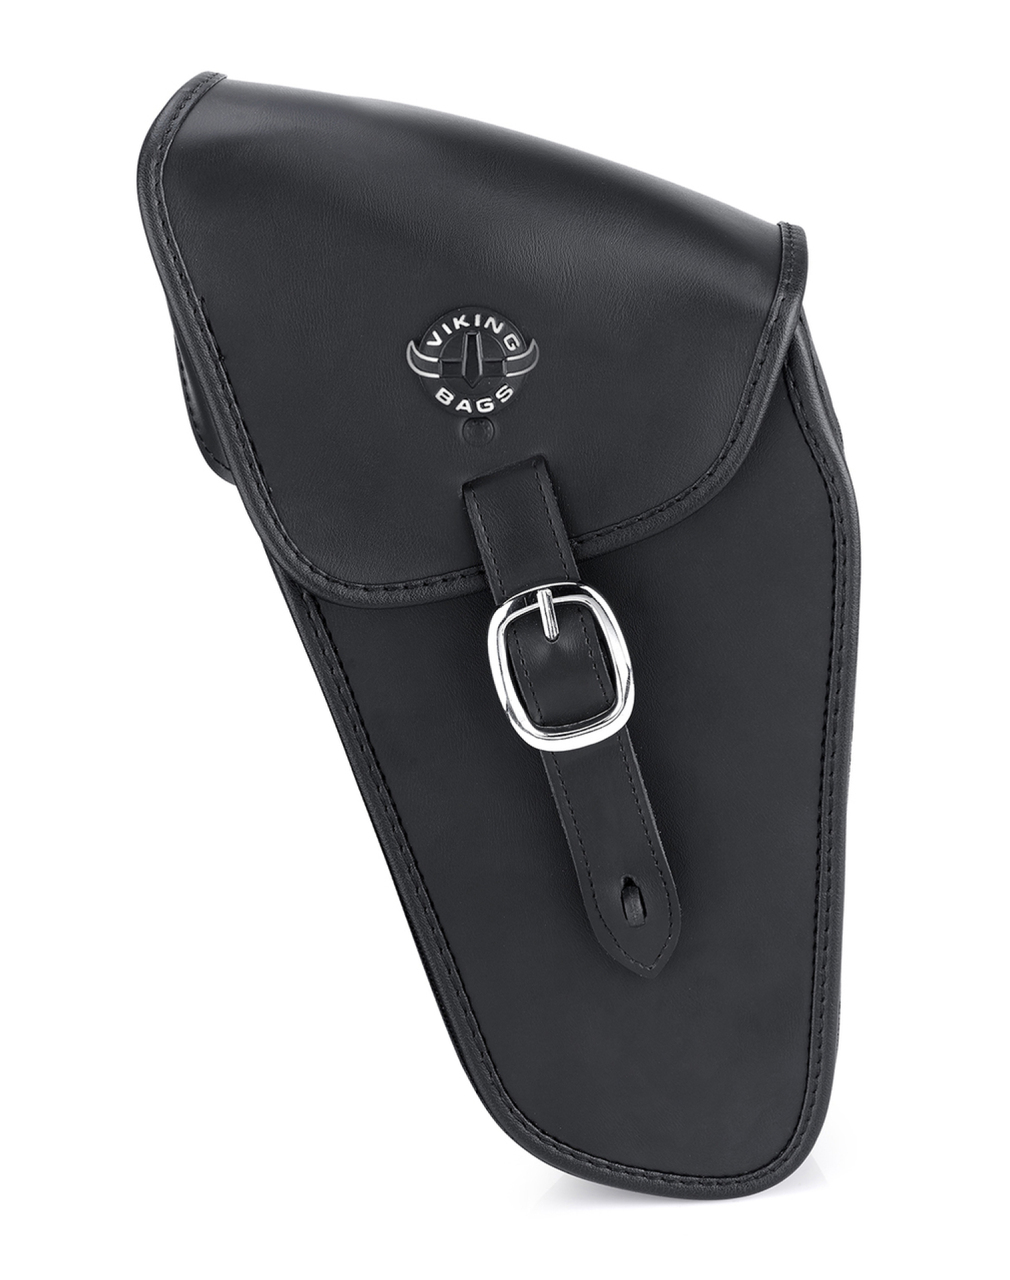 Viking Solo Bag For Harley Sportster Front View